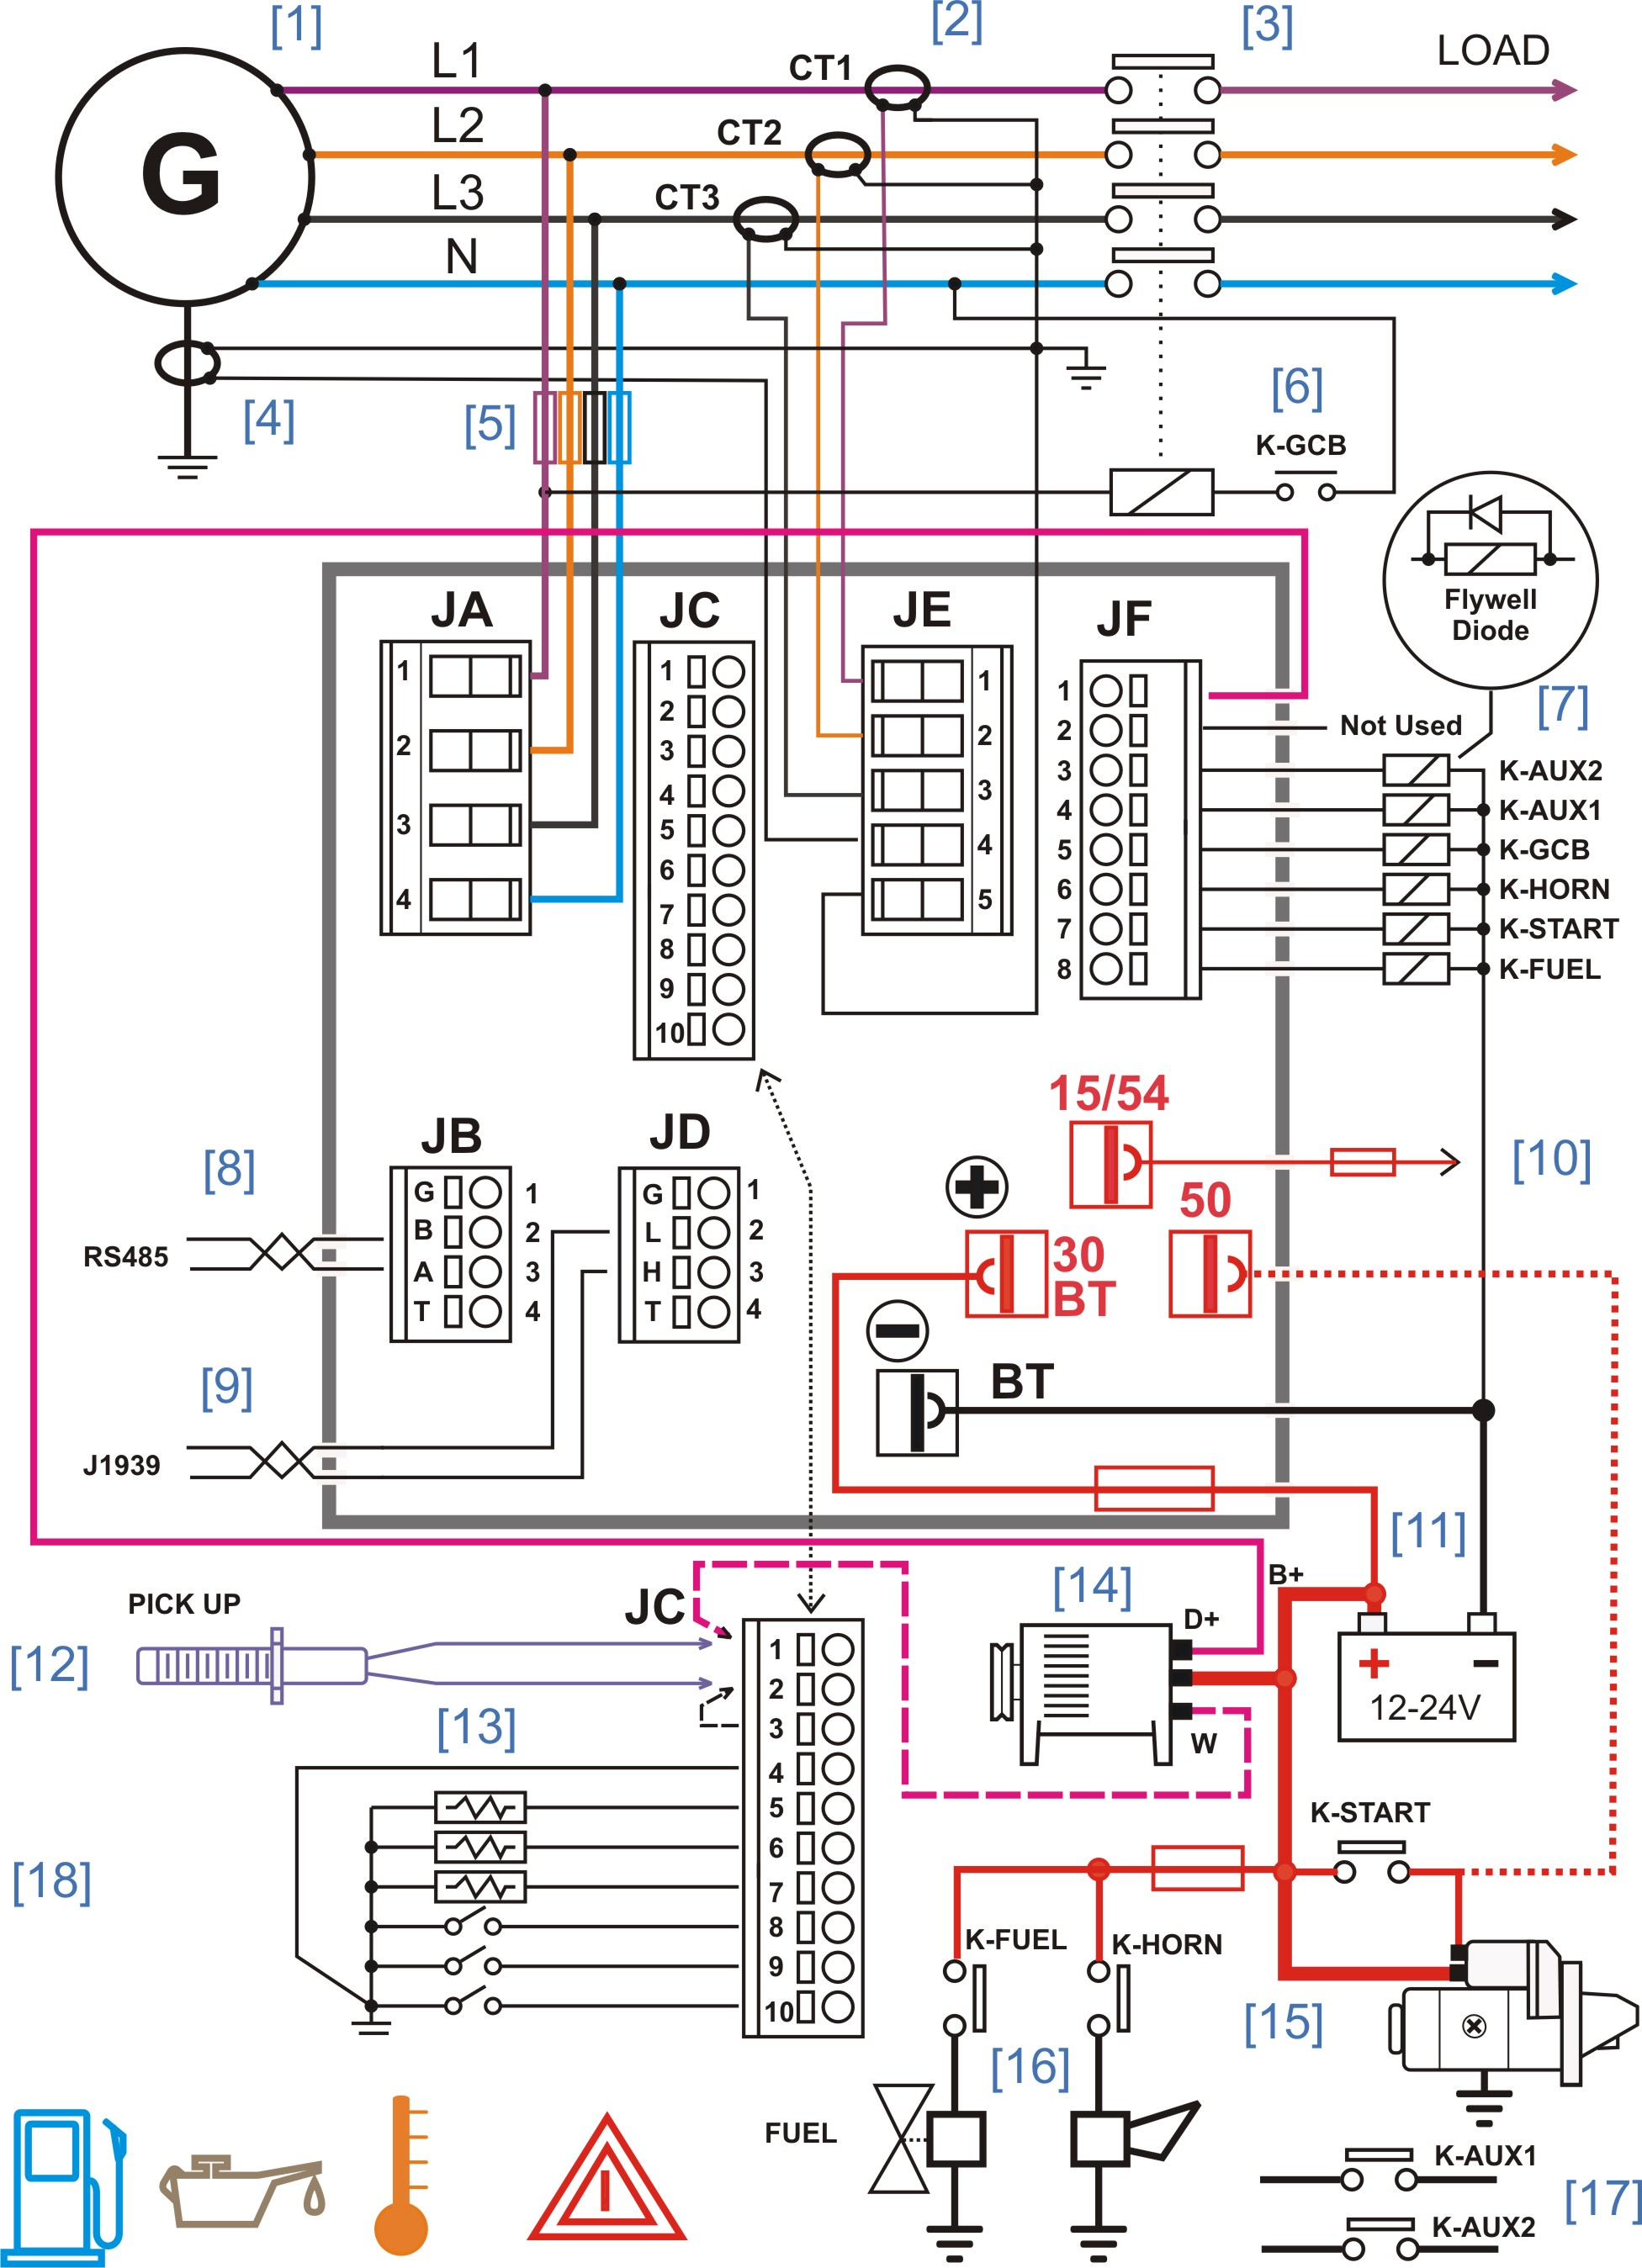 Diesel Generator Control Panel Wiring Diagram on onan engine wiring diagram